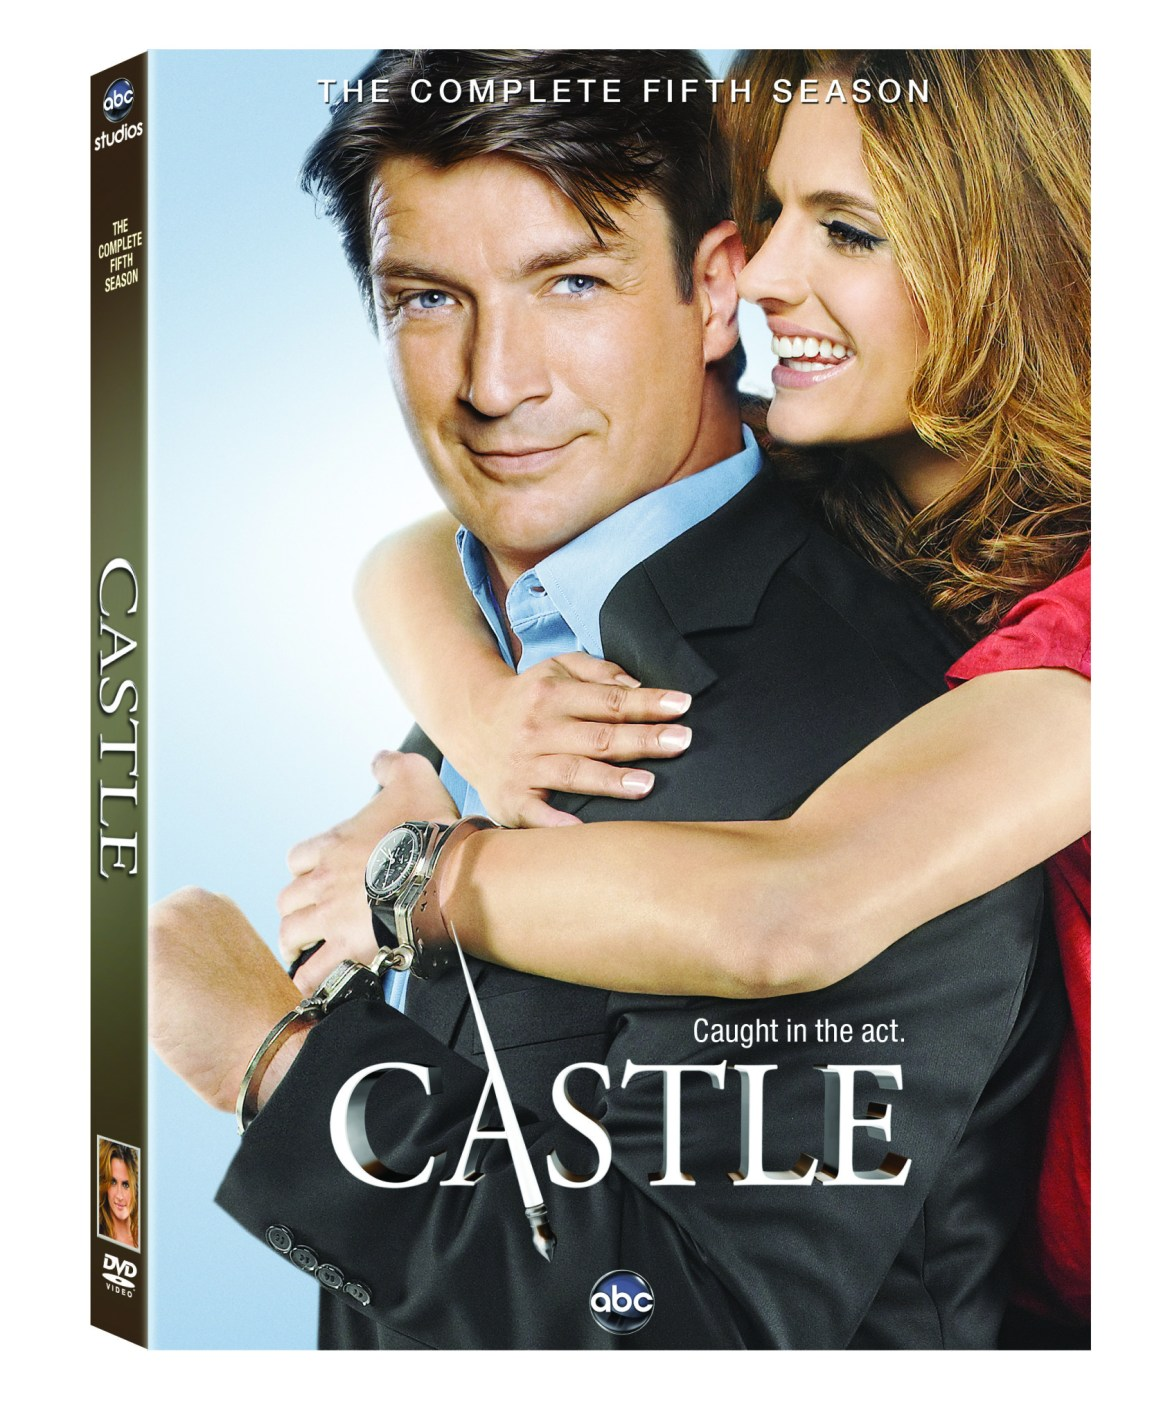 'Castle: The Complete Fifth Season' DVD Review